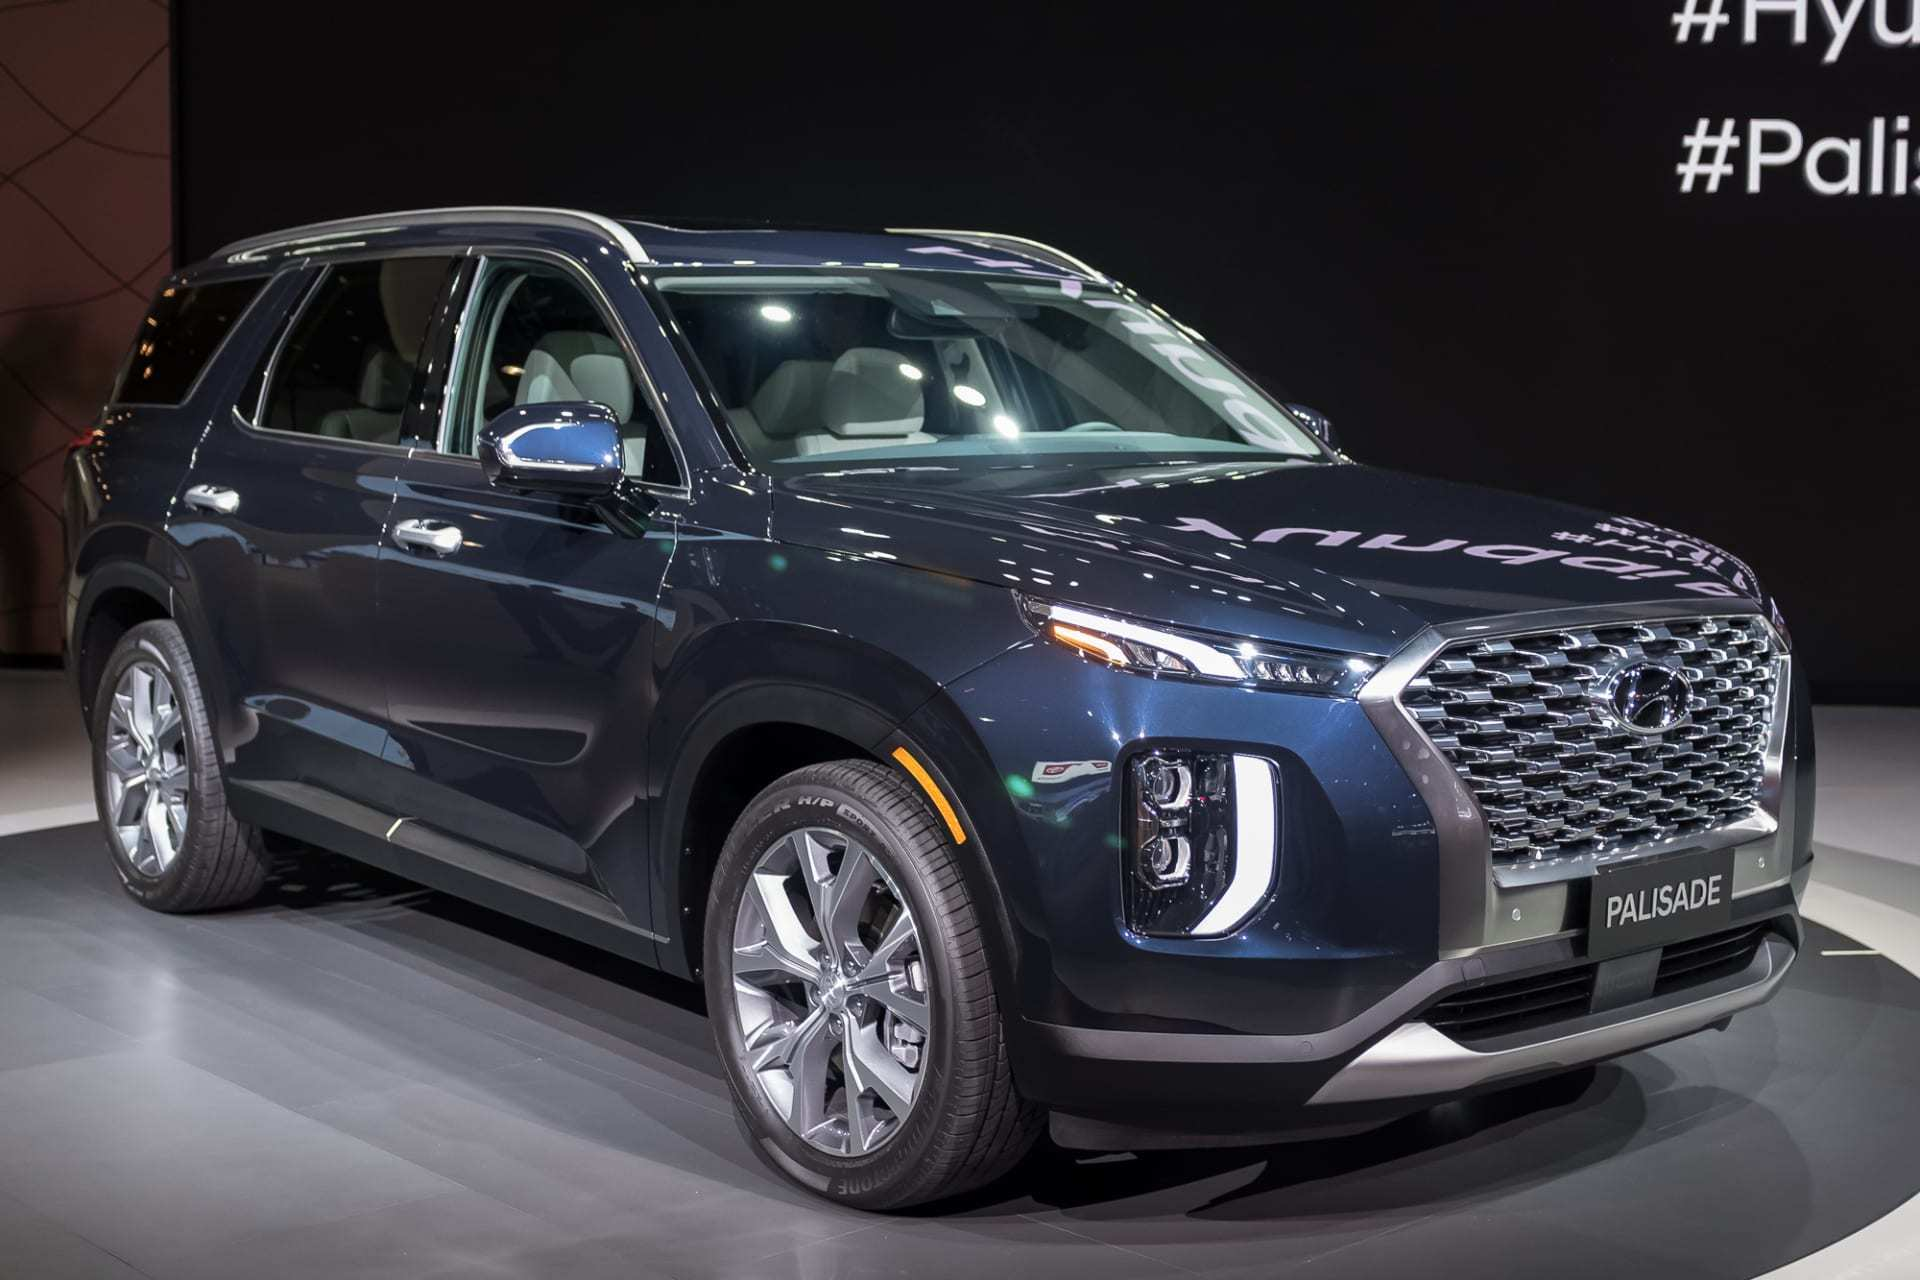 57 New Hyundai 3 Row Suv 2020 Price Design And Review